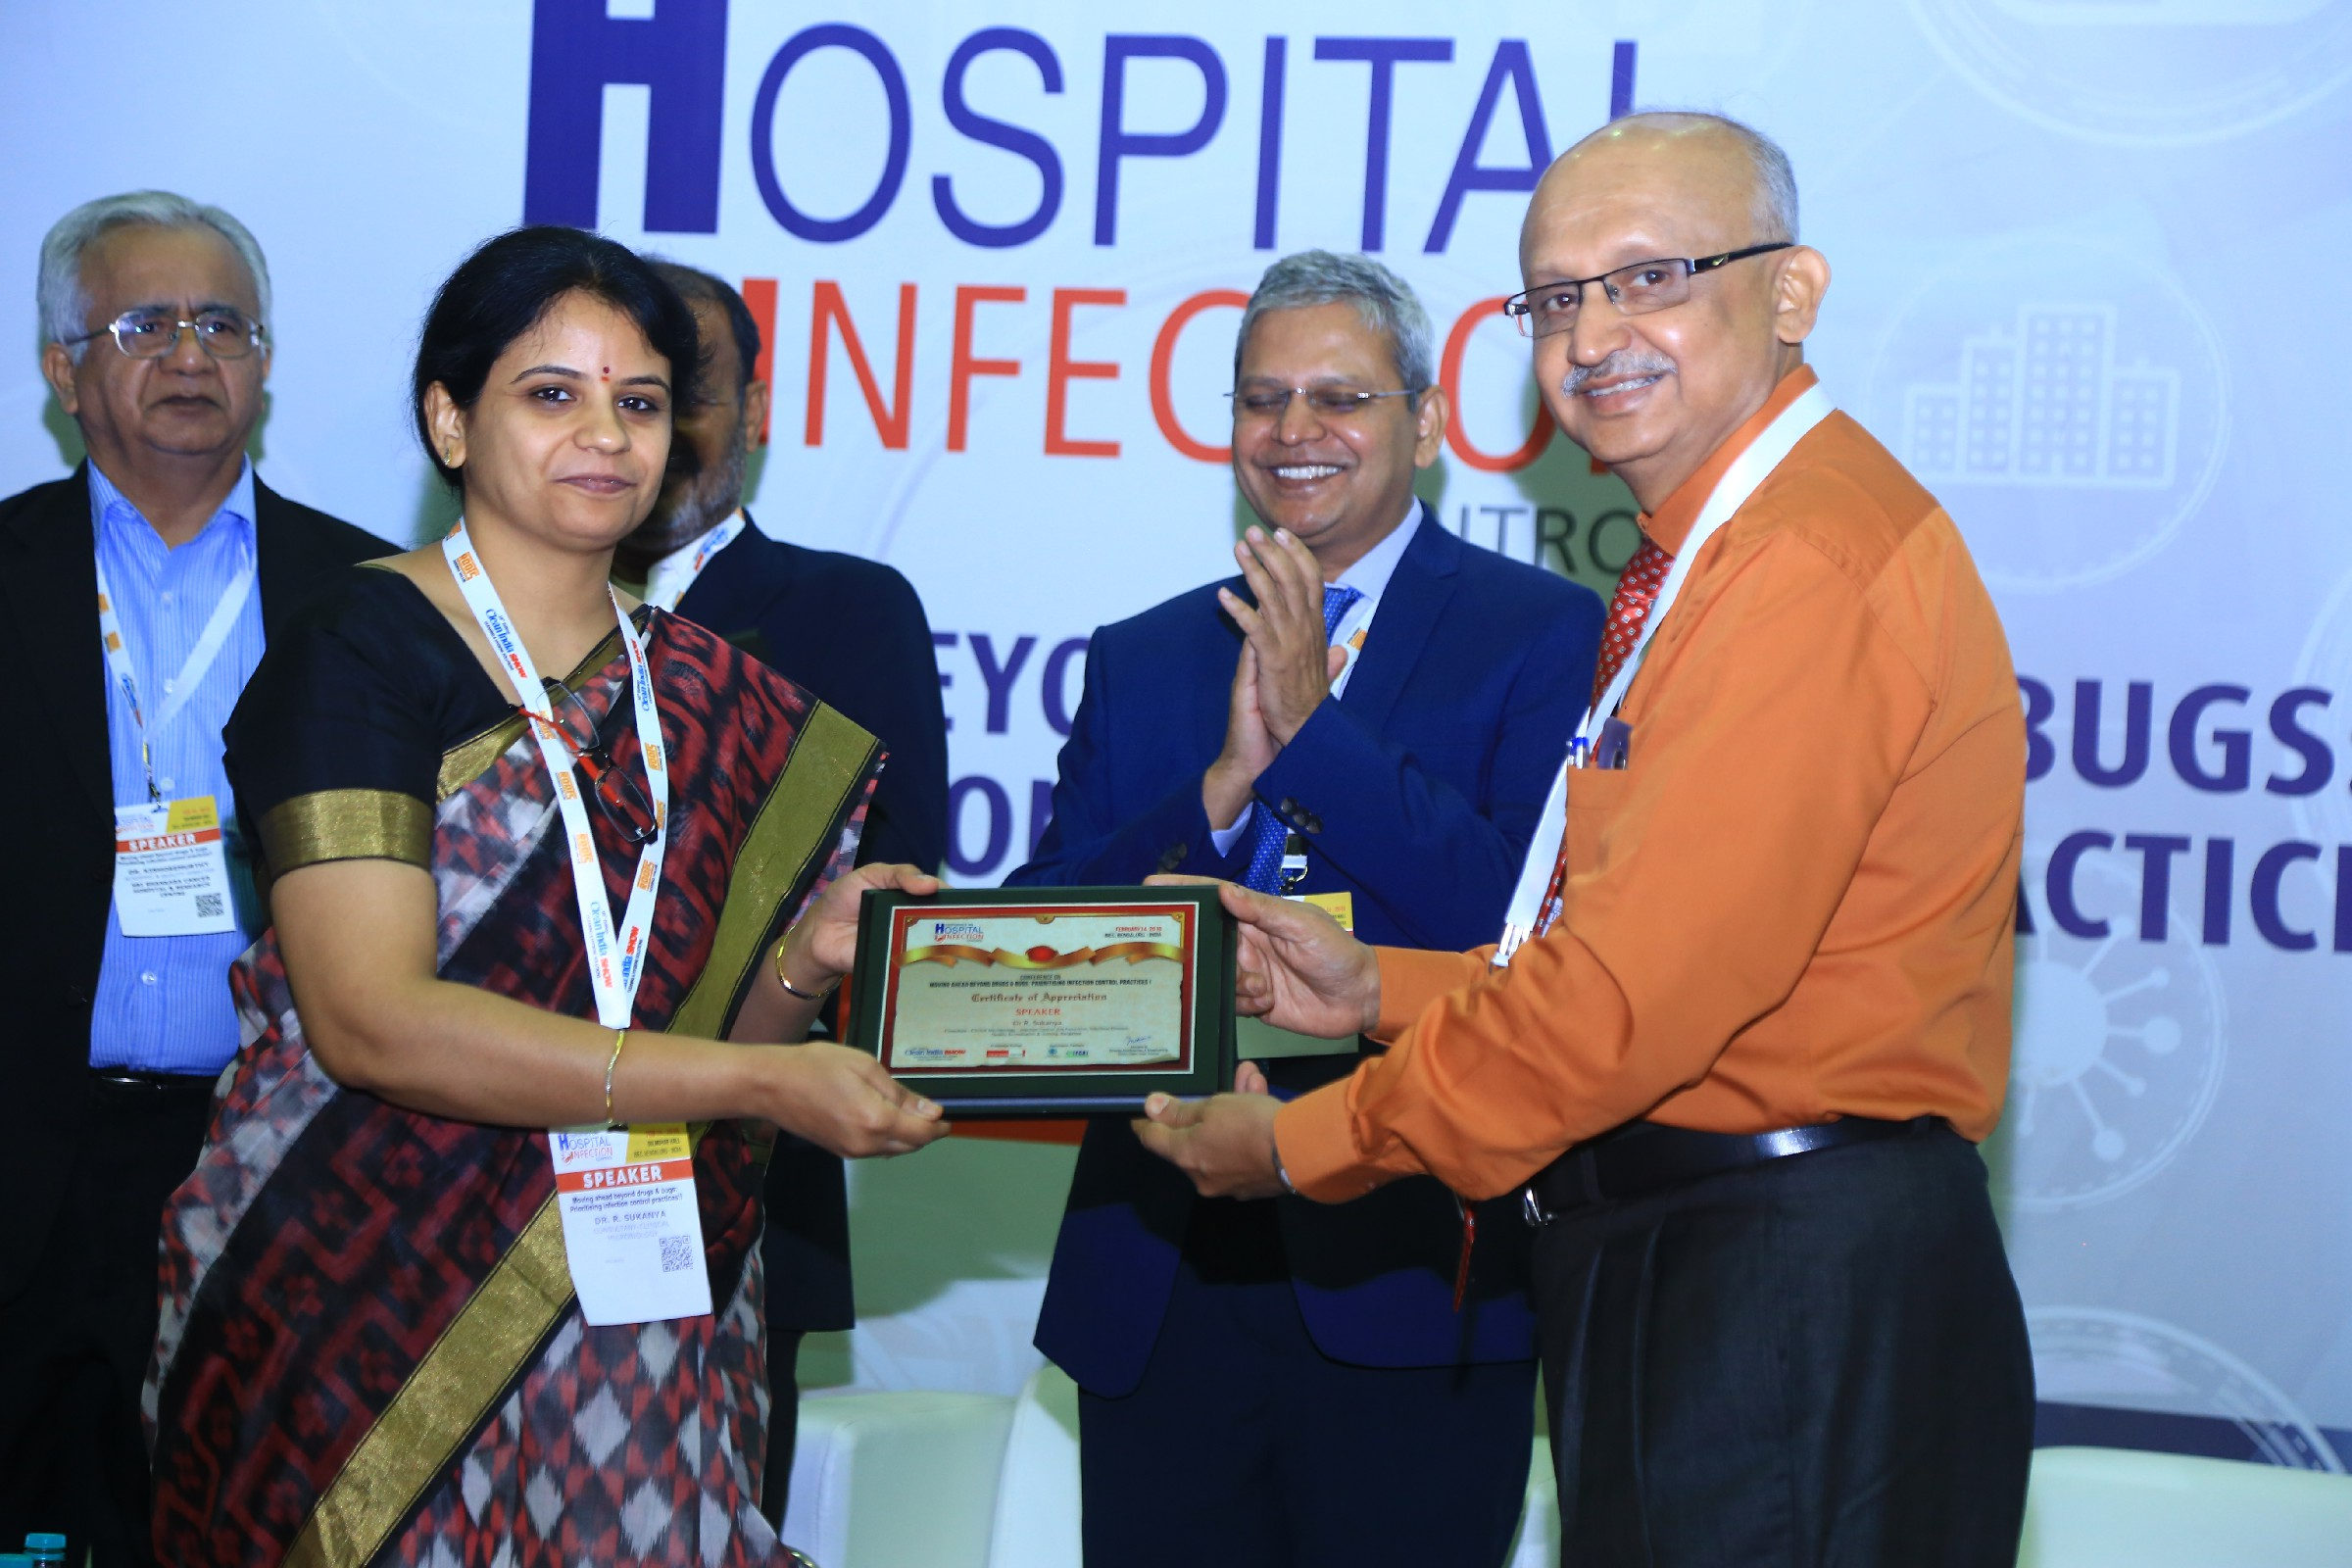 Dr-R.-Sukanya-Consultant-Infection-Control-and-Prevention-Infectious-Diseases-Quality-Accreditation-Dr-Raghavendra-Kulkarni-Prof-Head-Dept-of-MicrobiologySDM